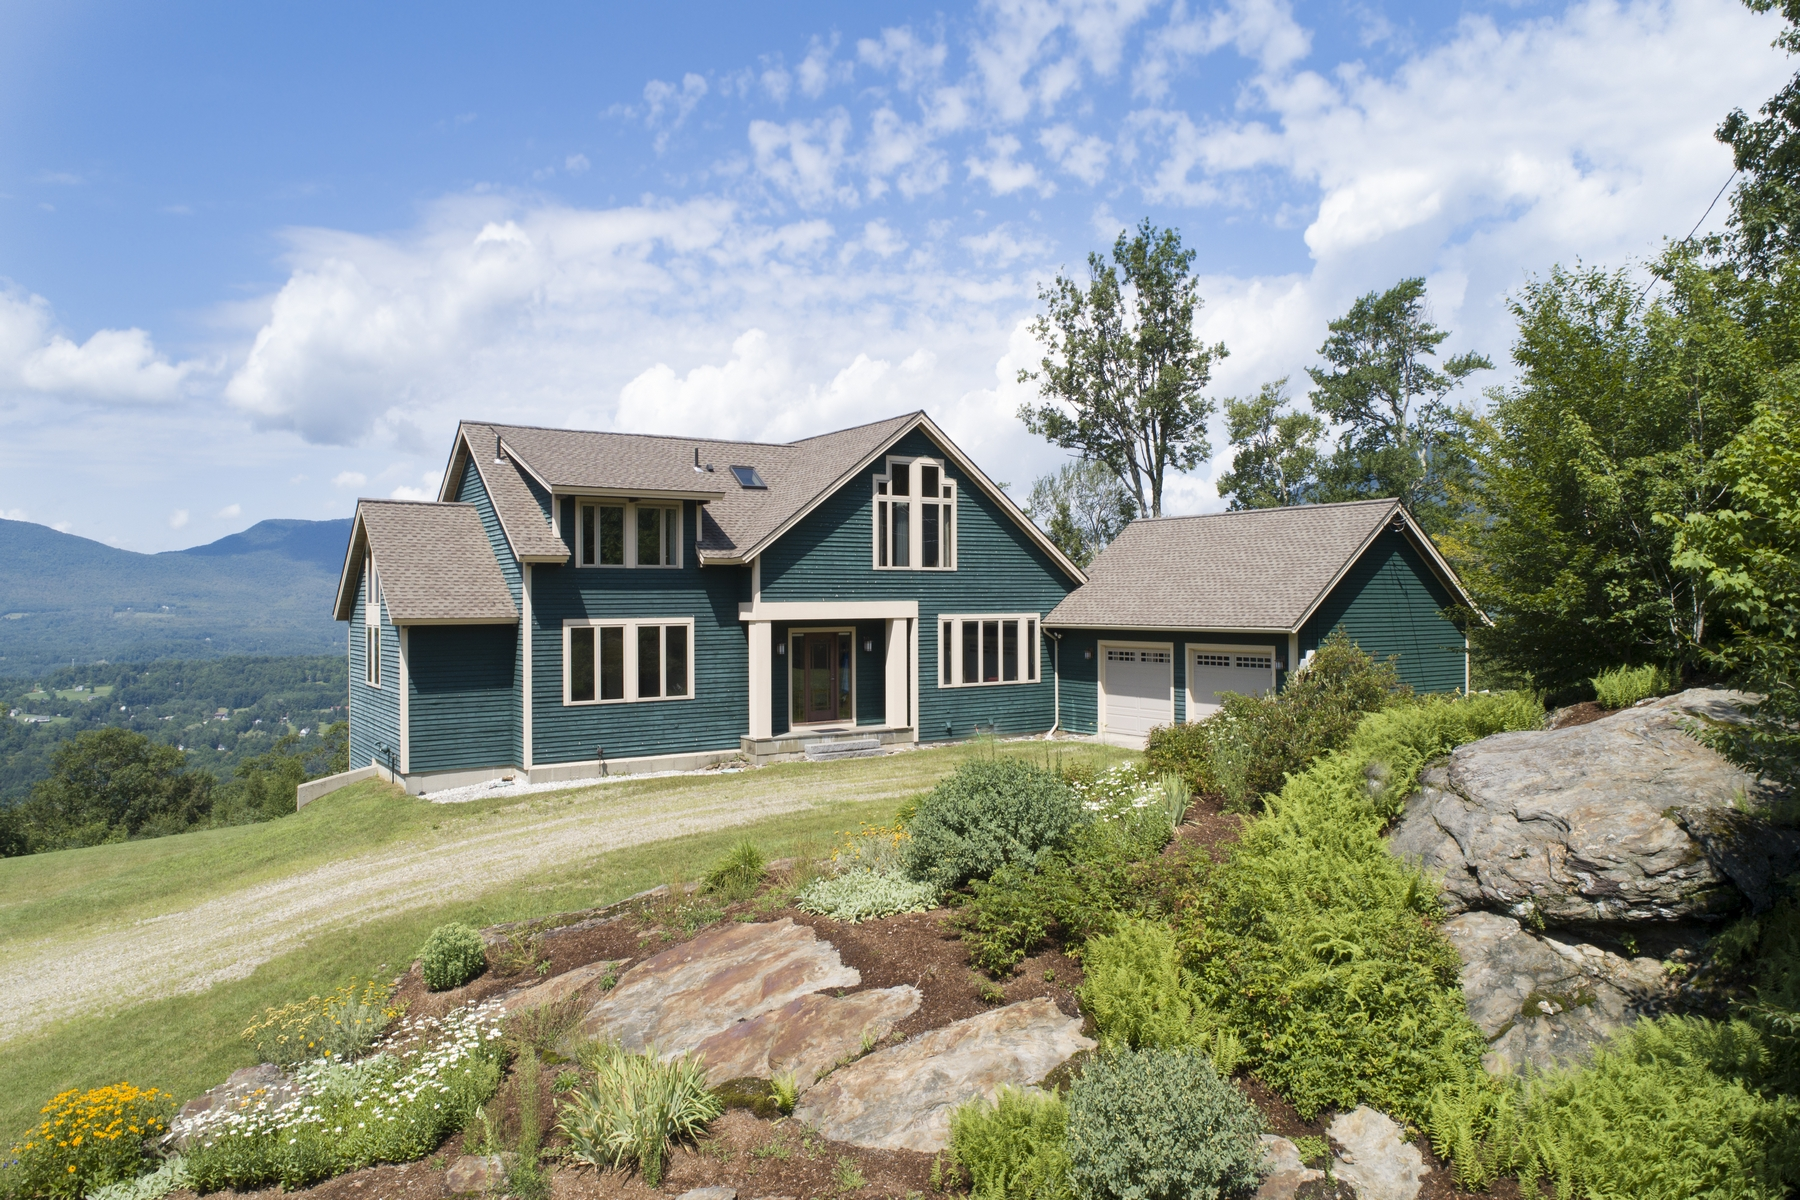 Single Family Homes for Sale at 17 Valley View Road, Winhall 17 Valley View Rd Winhall, Vermont 05340 United States